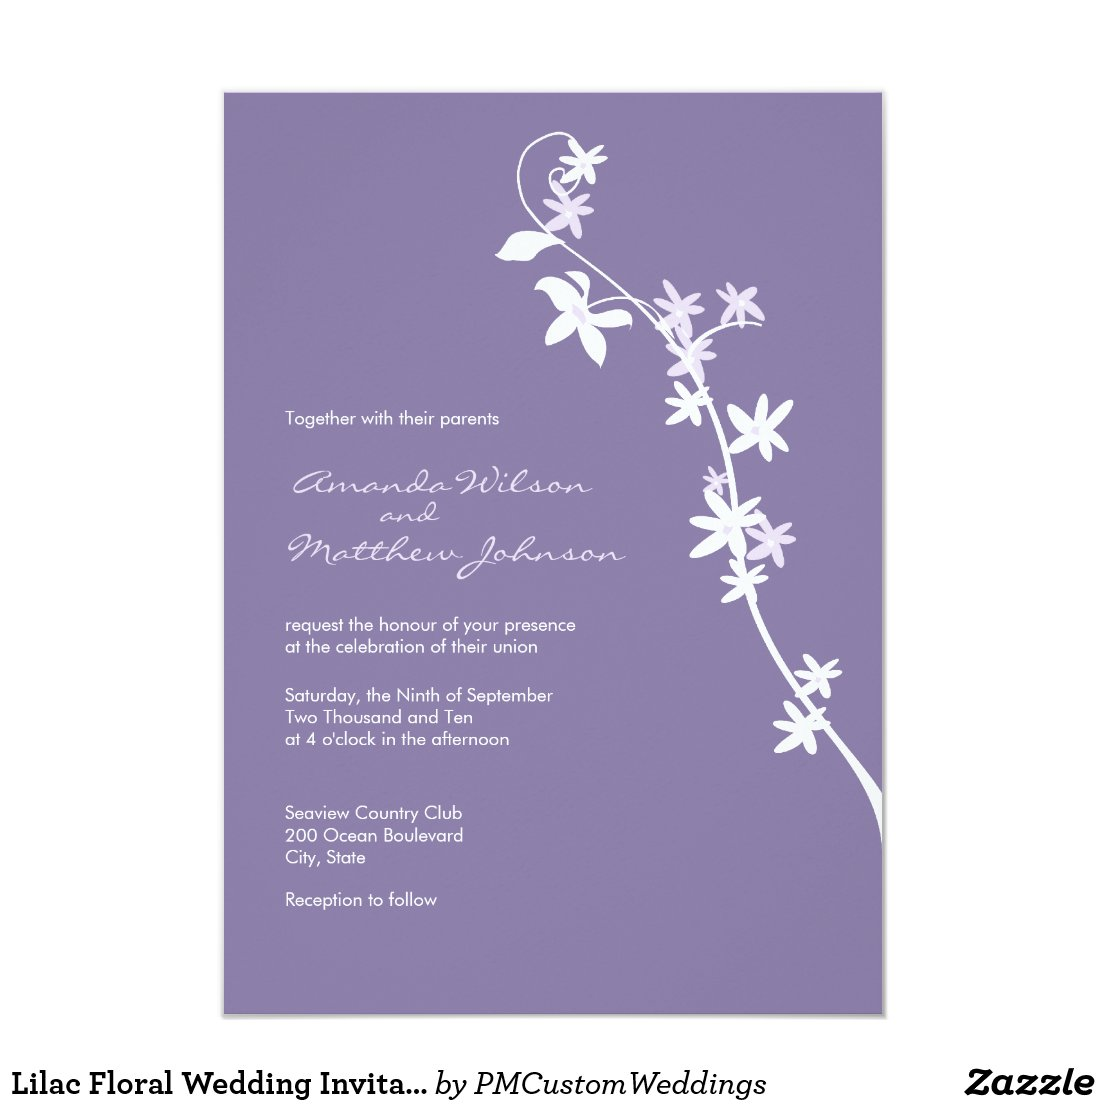 Lilac Floral Wedding Invitations